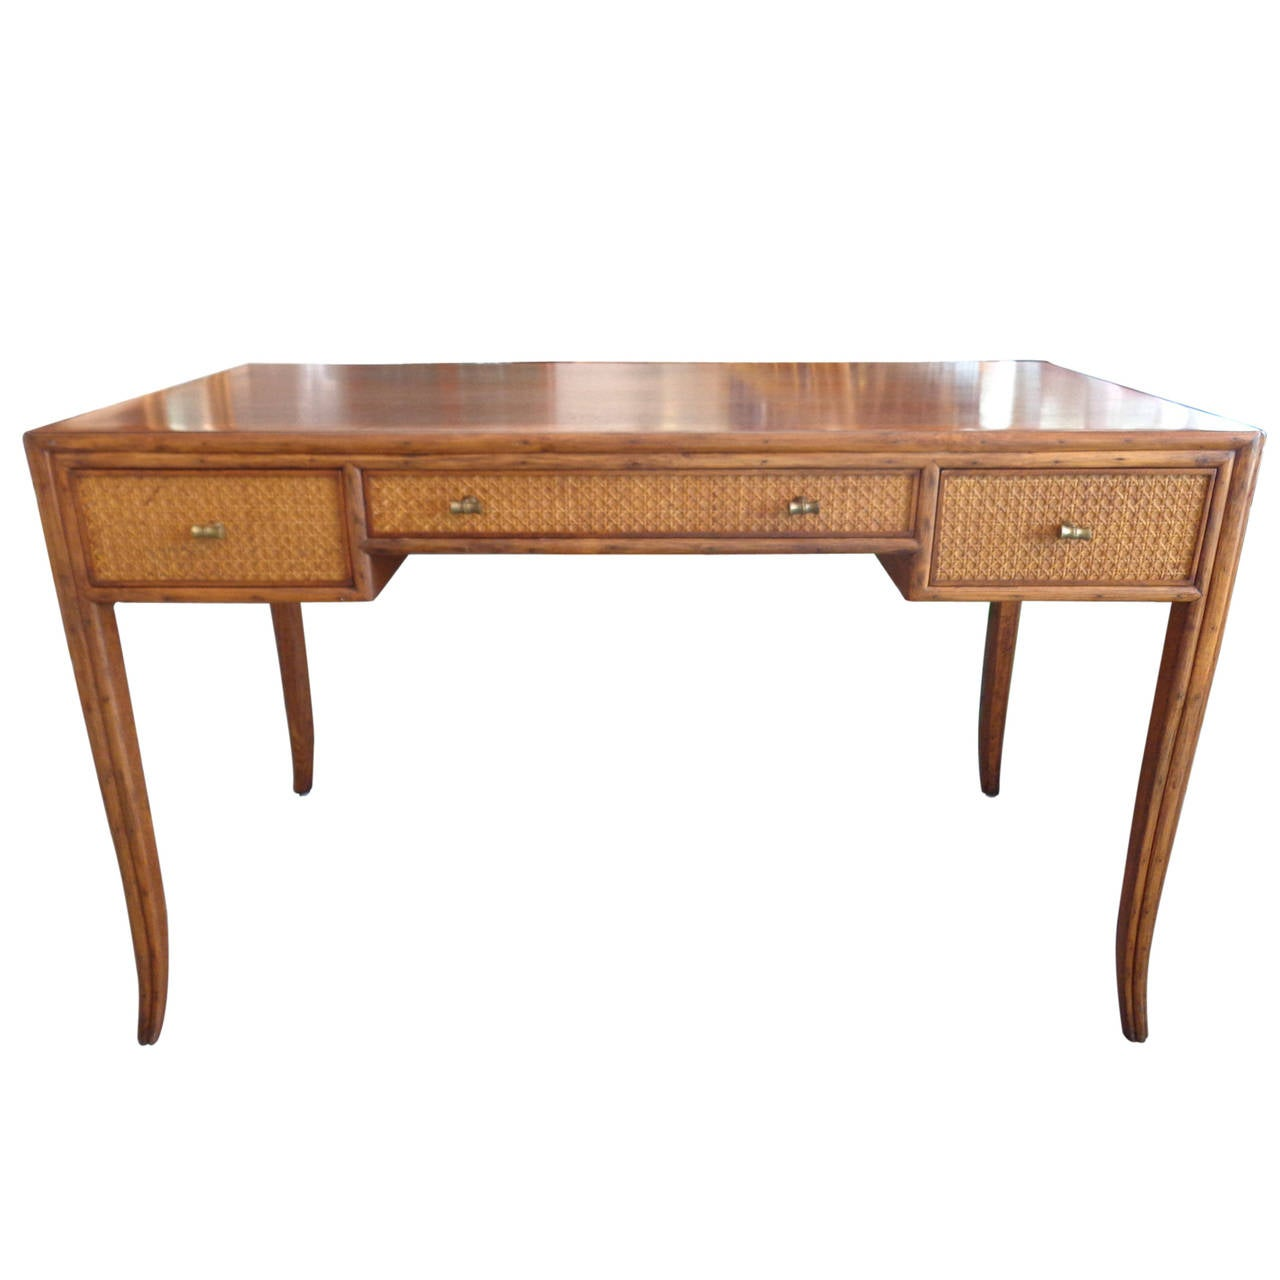 wicker writing desk A wicker writing desk and chair the desk has a woven top and sides solid wood frames the writing surface and continues to solid wood straight tapered legs one.